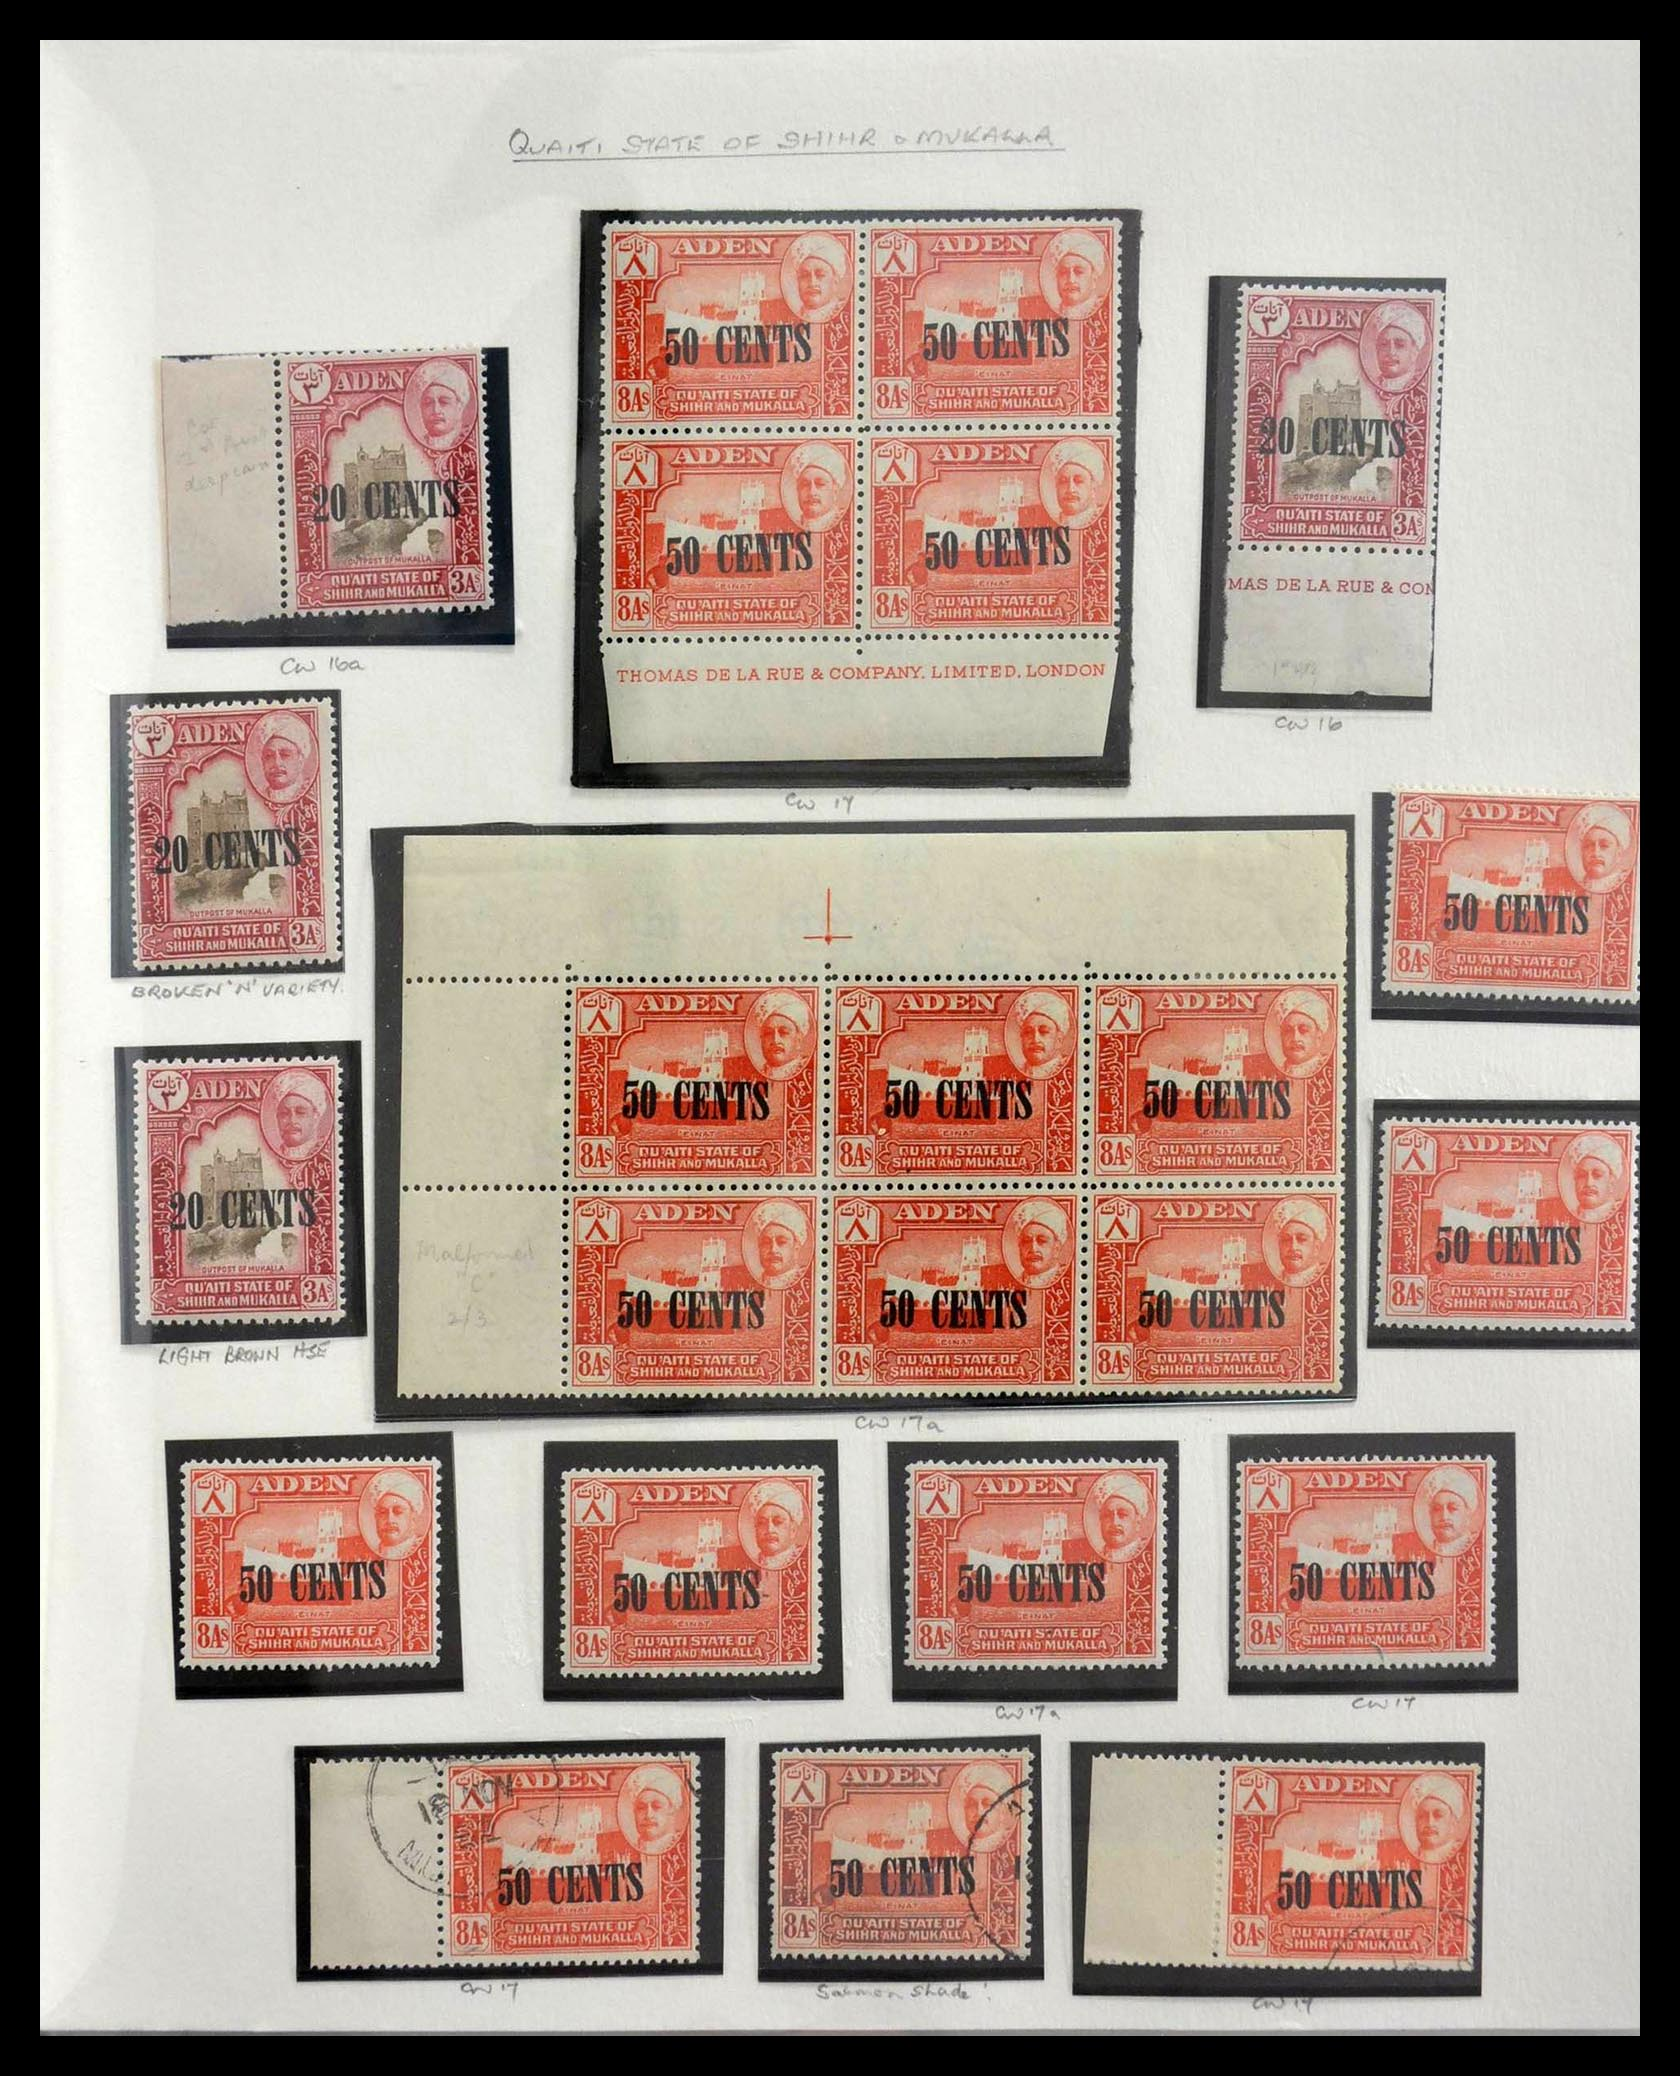 28672 019 - Stamp collection 28672 Aden Qu'aiti State 1942-1966.